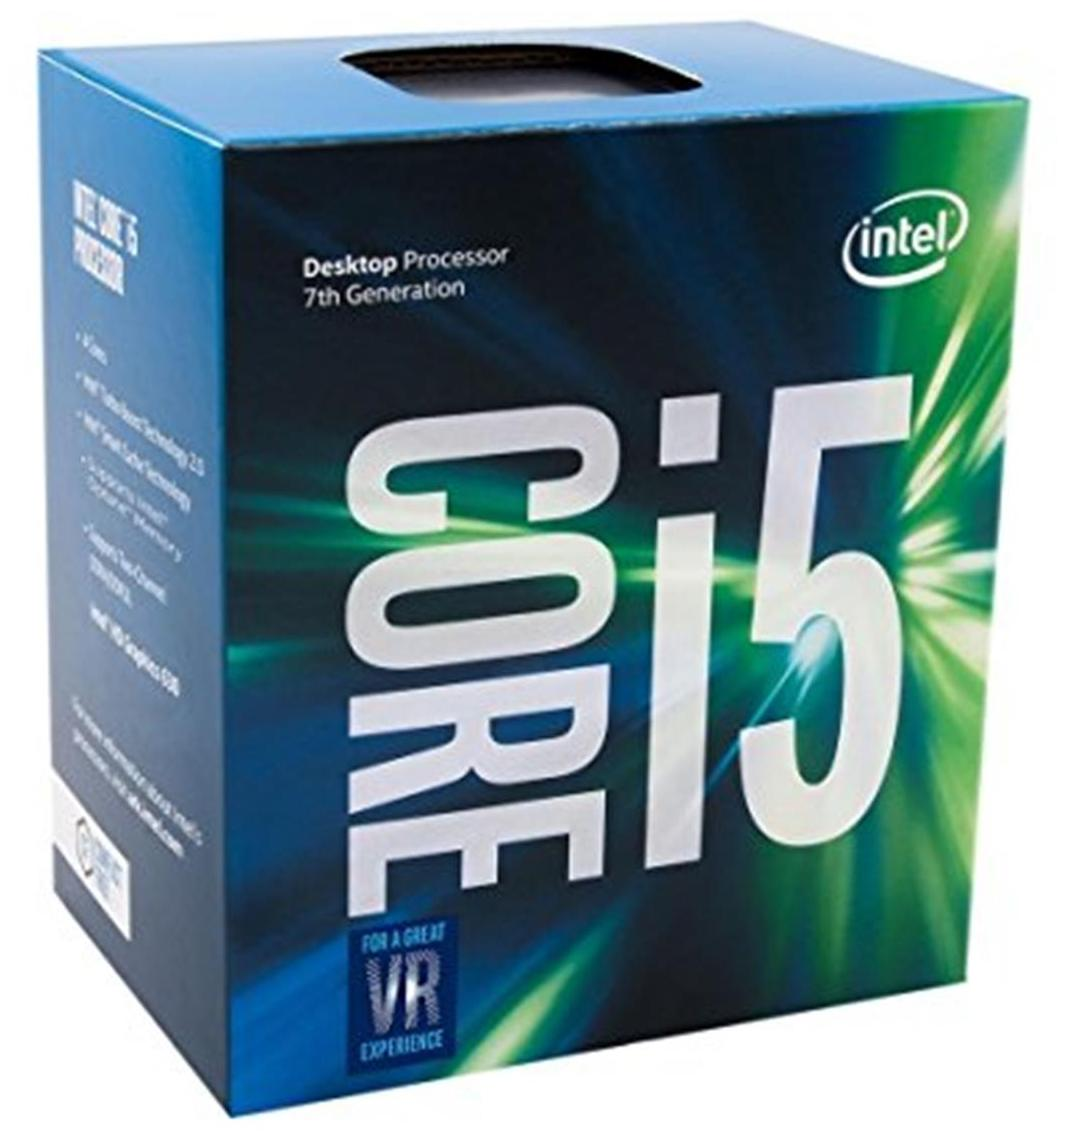 Intel Core I5 7600 7th Gen processor LGA 1151 socket 3.5Ghz